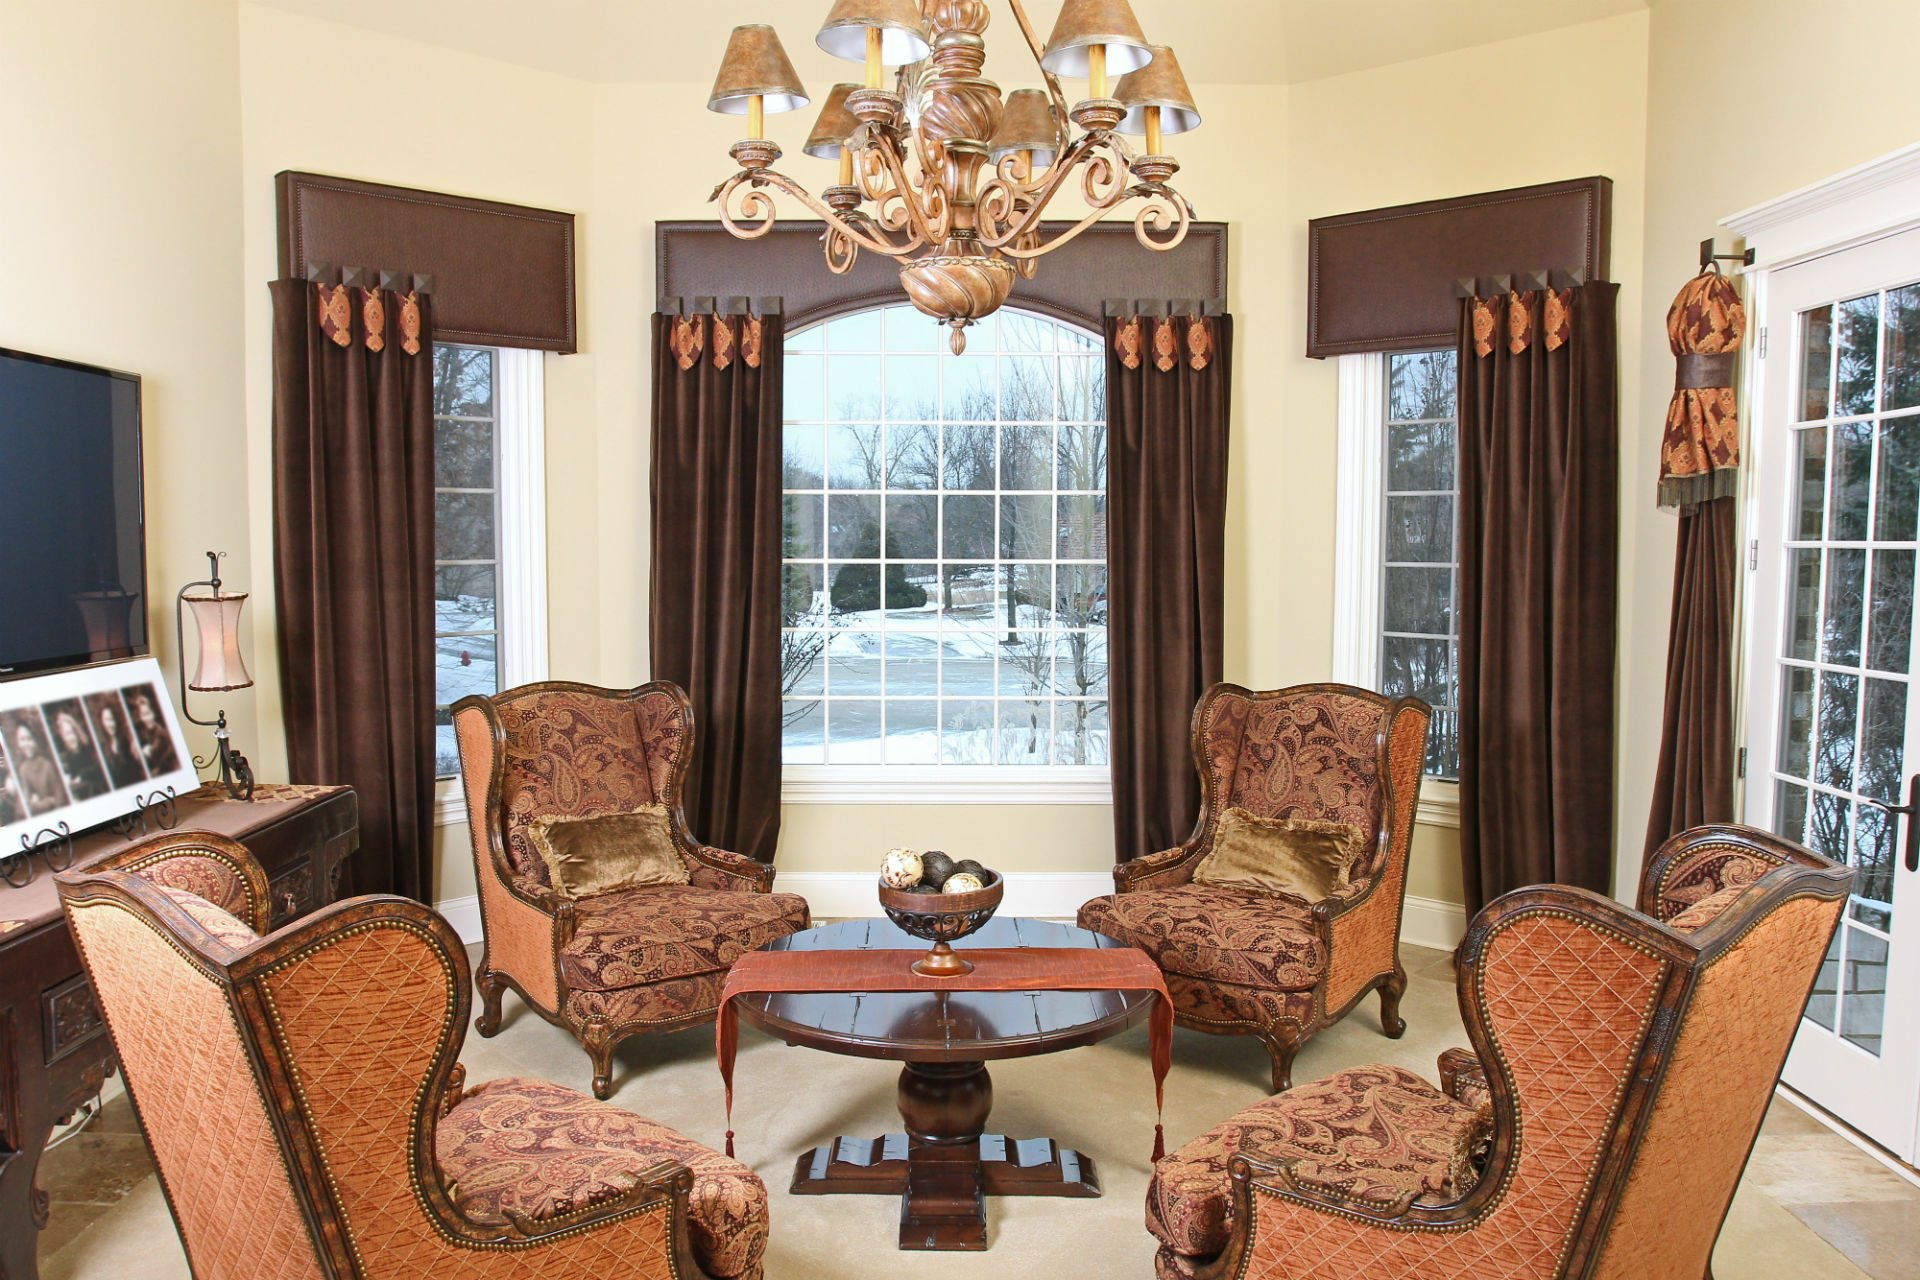 Naperville Home Design, Burr Ridge Home Design, bedding, curtains, custom designs, draperies, blinds, shutters, interior design